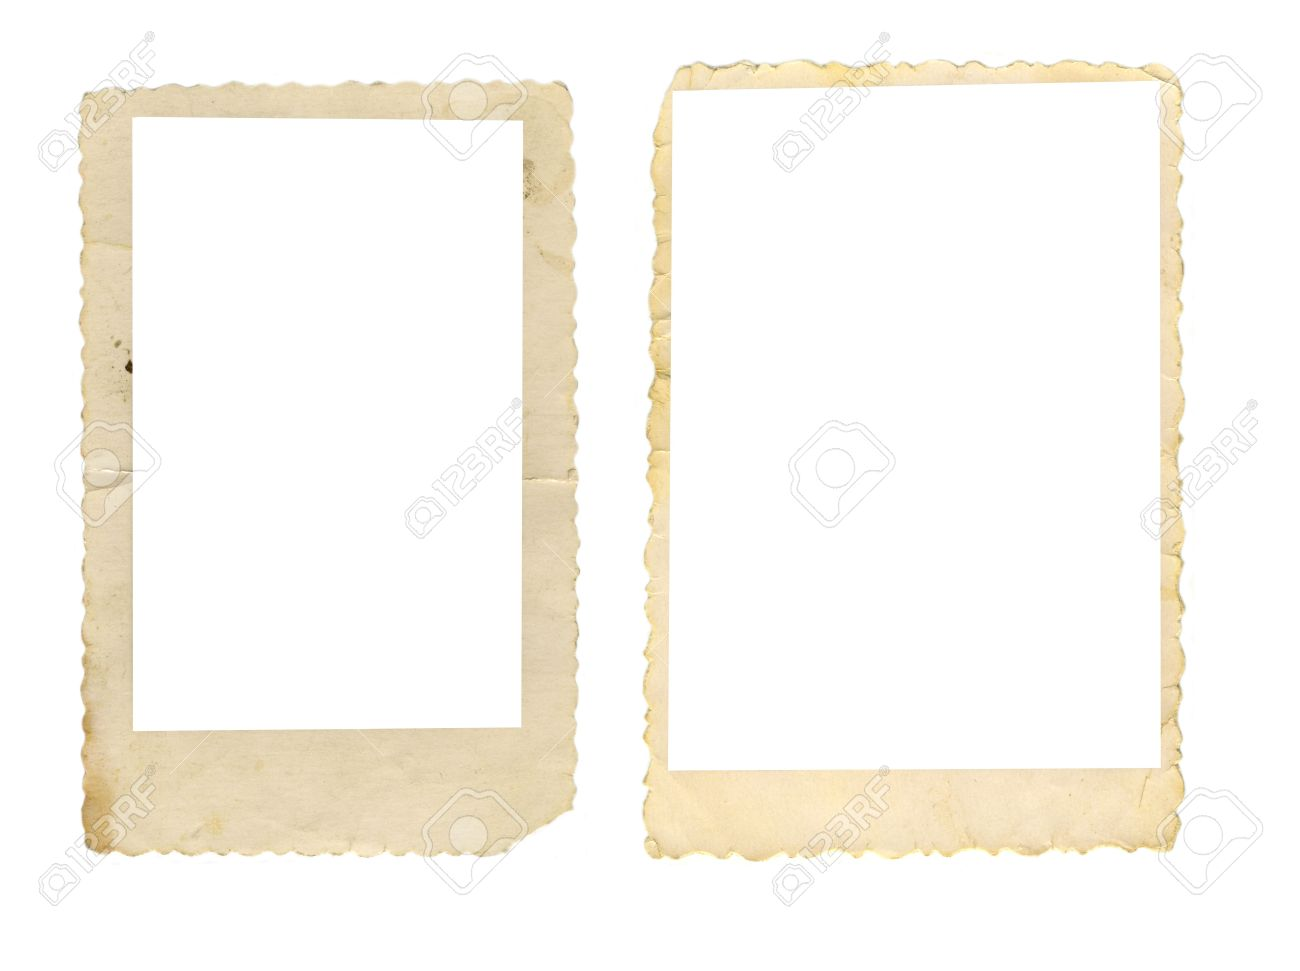 Two Old-fashioned Wavely Cut Paper Photo Frames Isolated On White ...